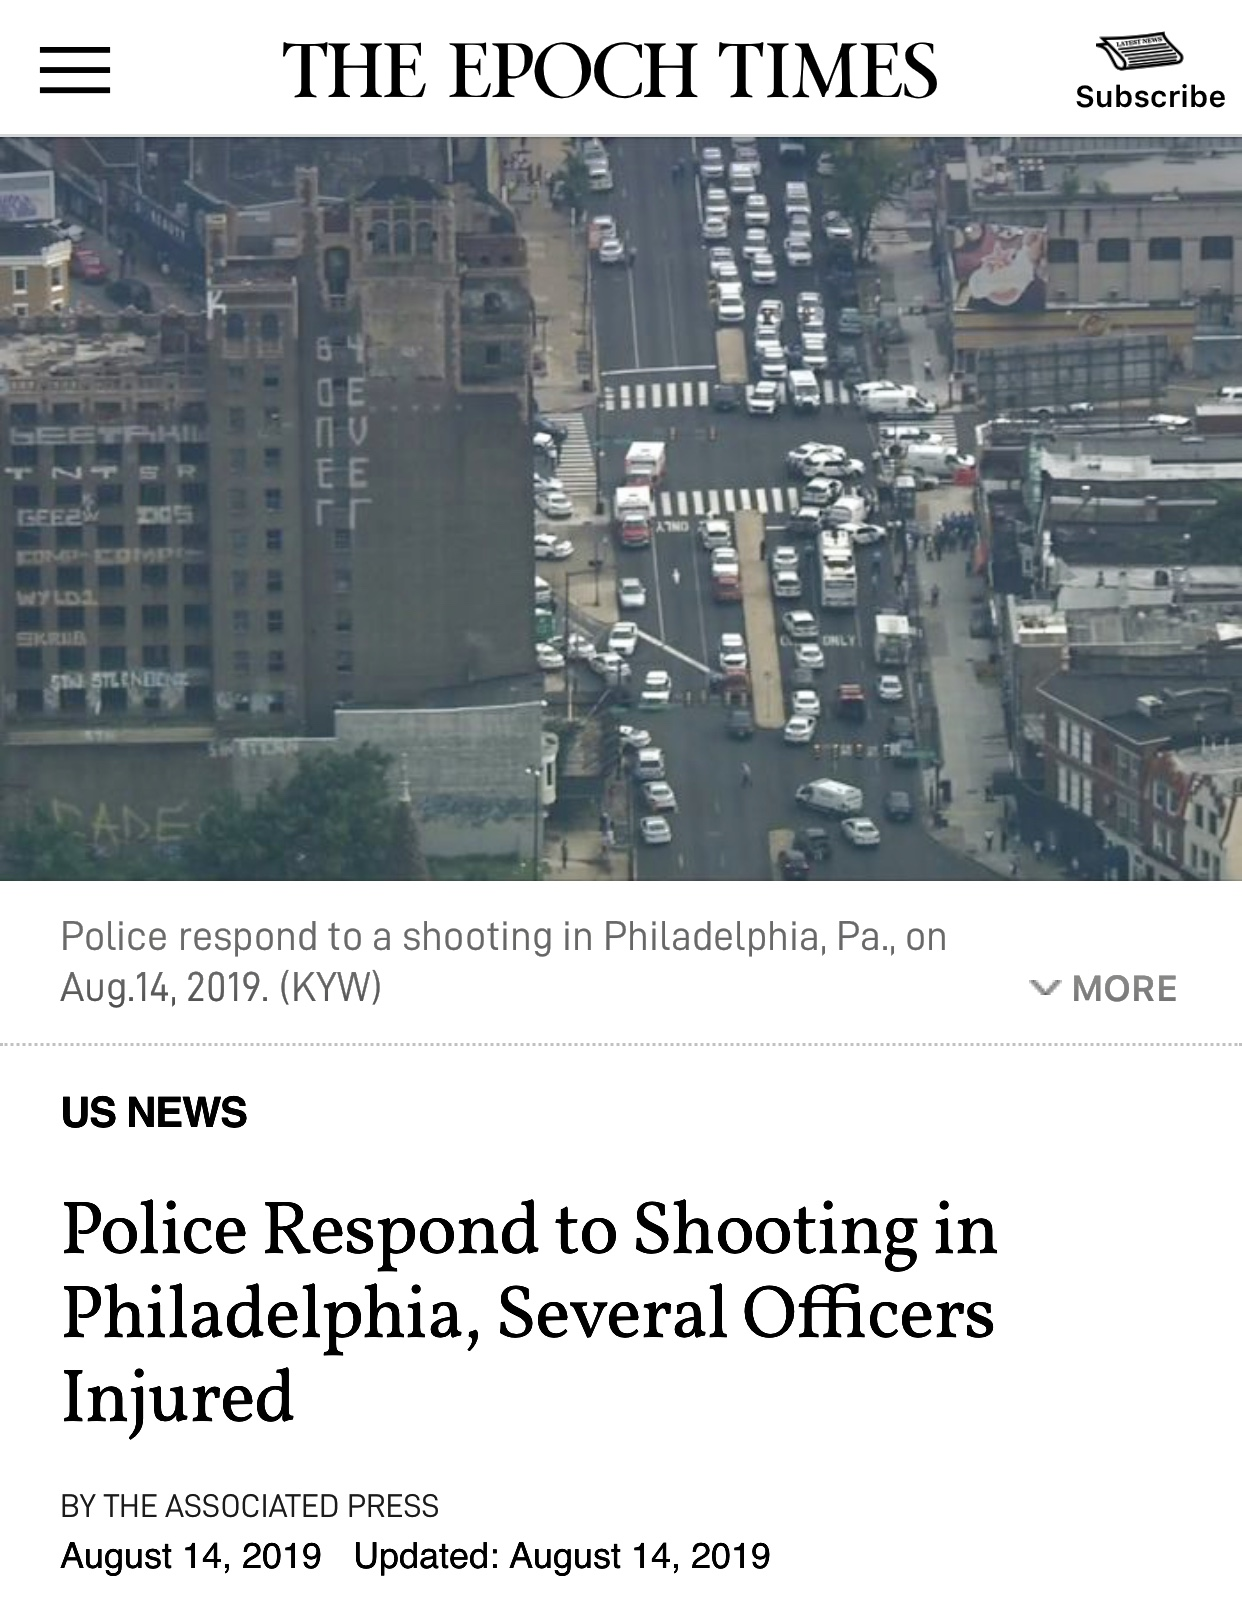 Breaking News: Shooting in Philadelphia, Looks Like An Ambush